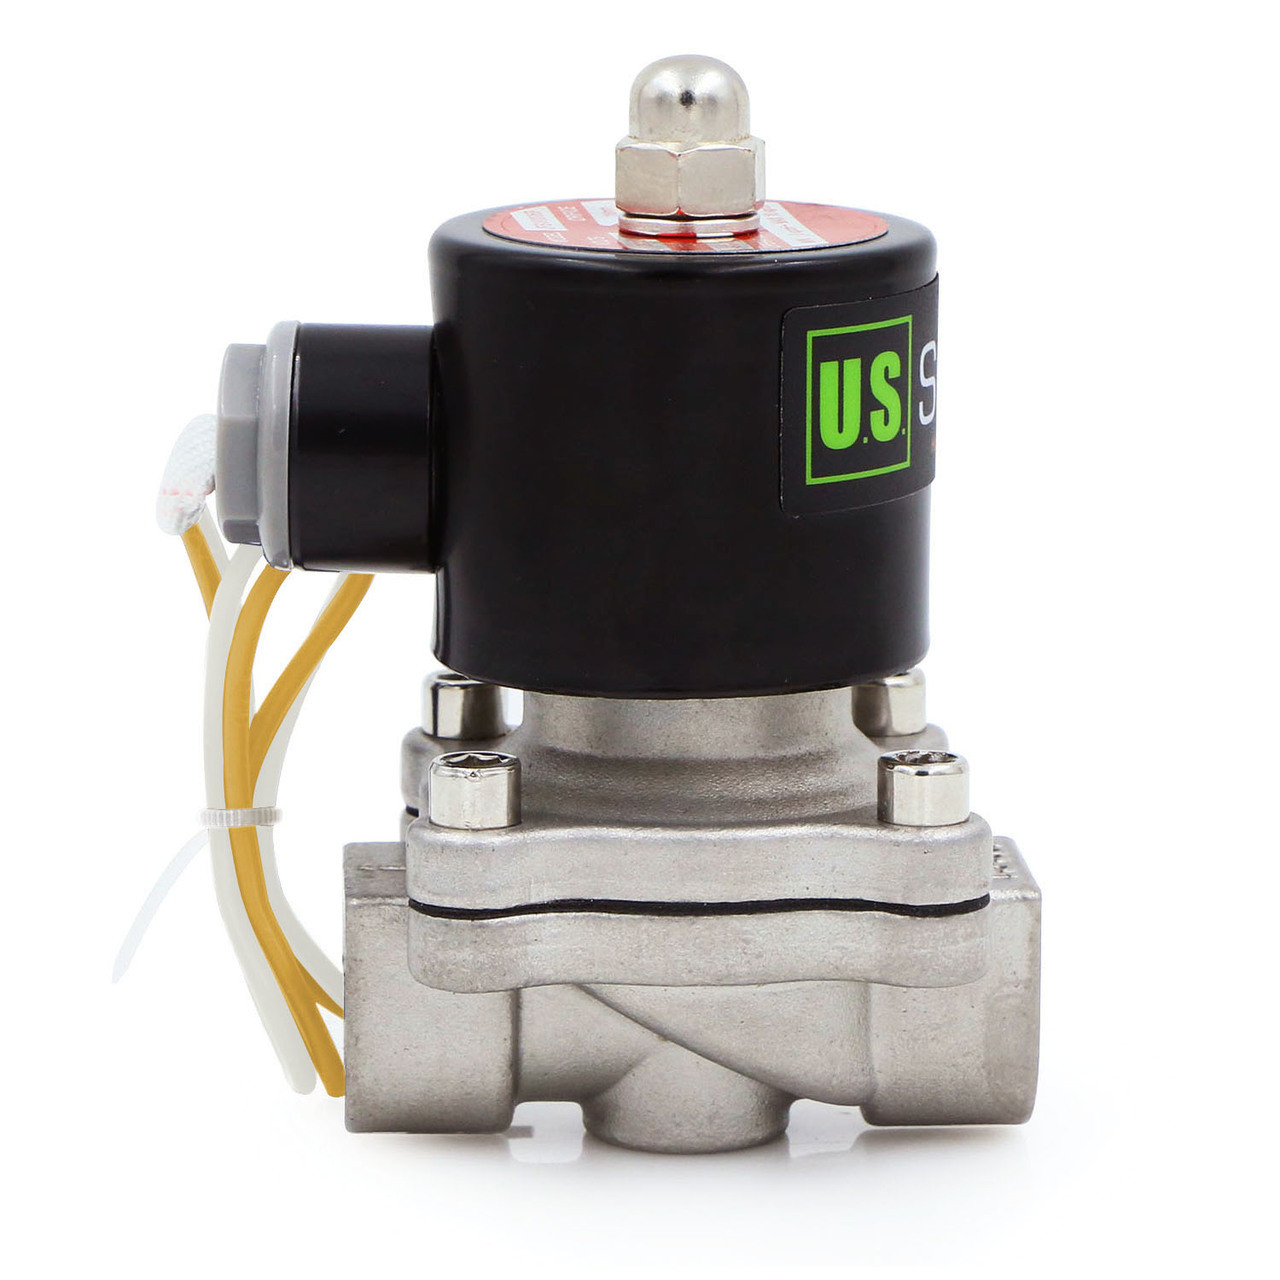 """U.S. Solid Electric Solenoid Valve- 1/2"""" 110V AC Solenoid Valve Stainless Steel Body Normally Closed, VITON SEAL"""